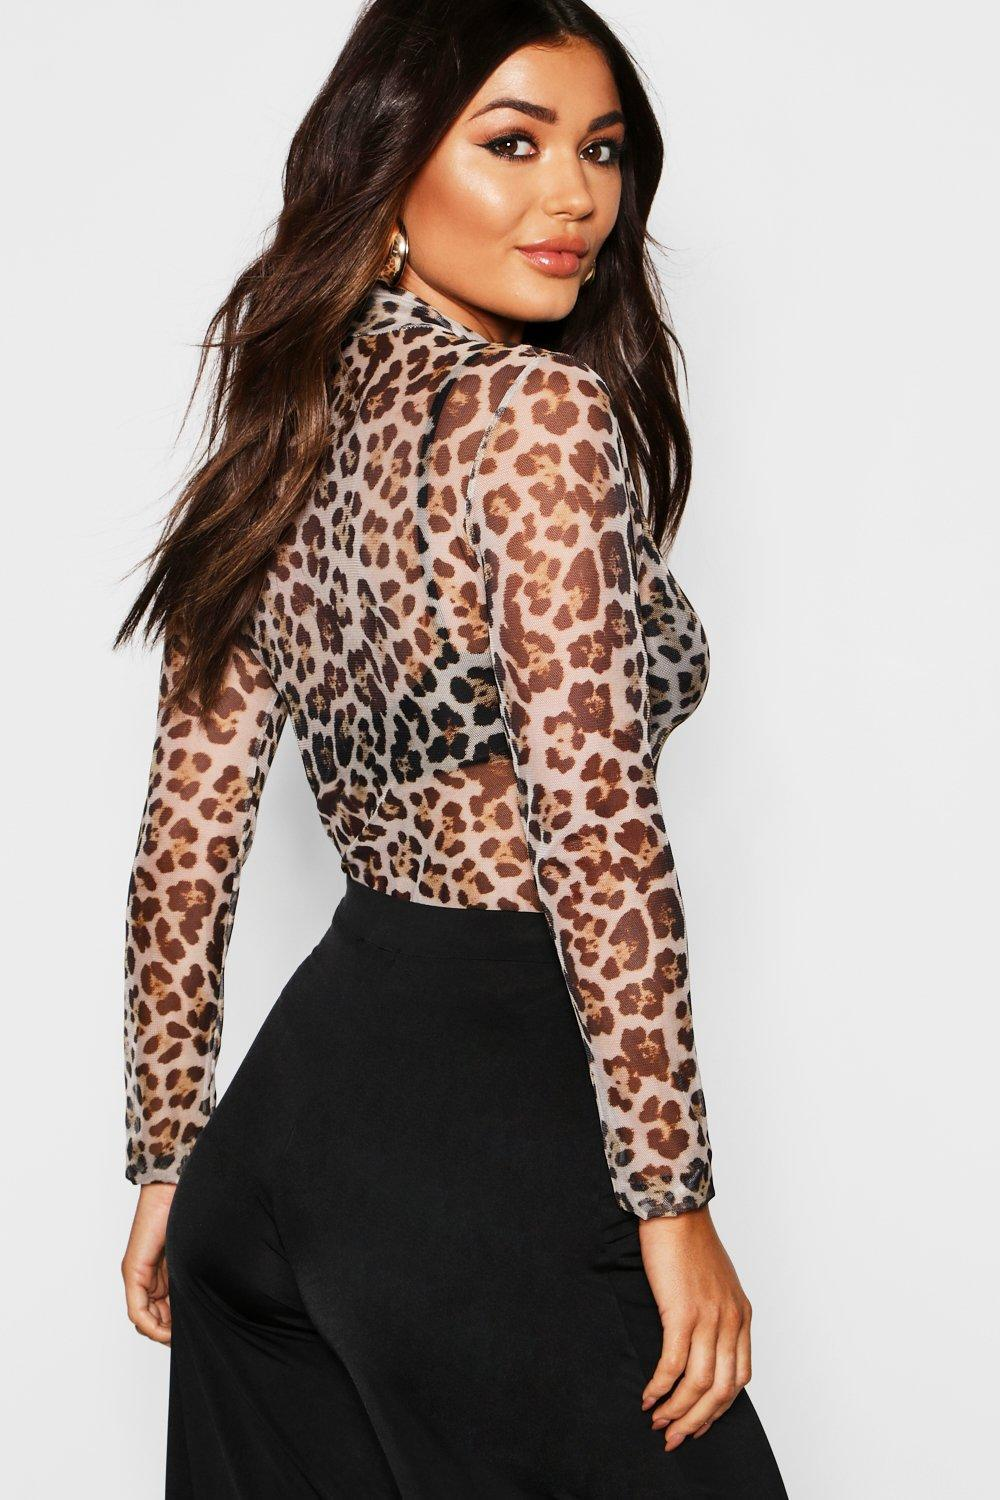 c2c0042bb24 Boohoo Leopard Print Mesh Turtle Neck Long Sleeve Top in Natural - Lyst